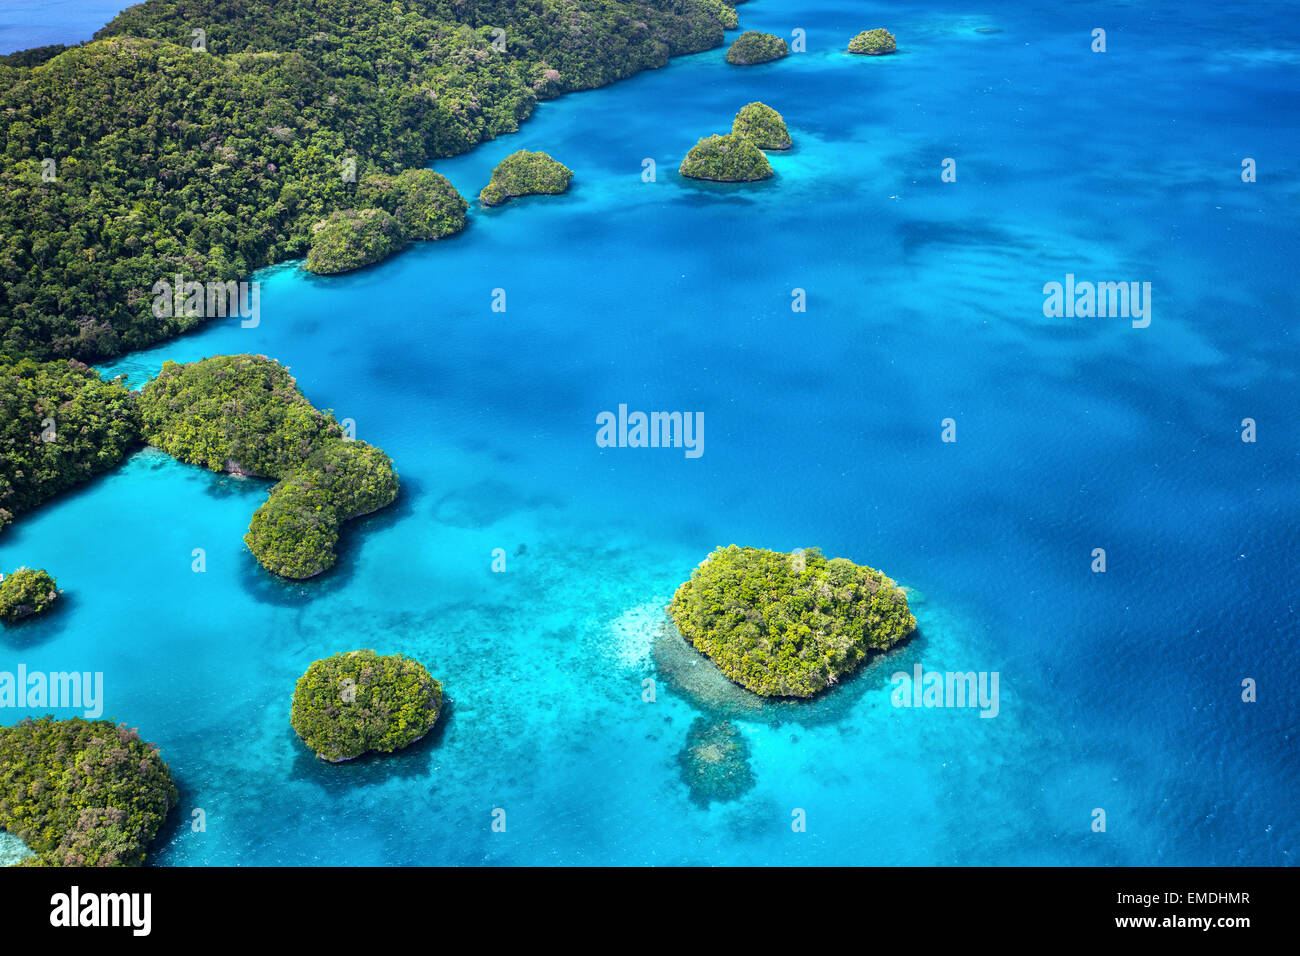 Palau islands from above - Stock Image